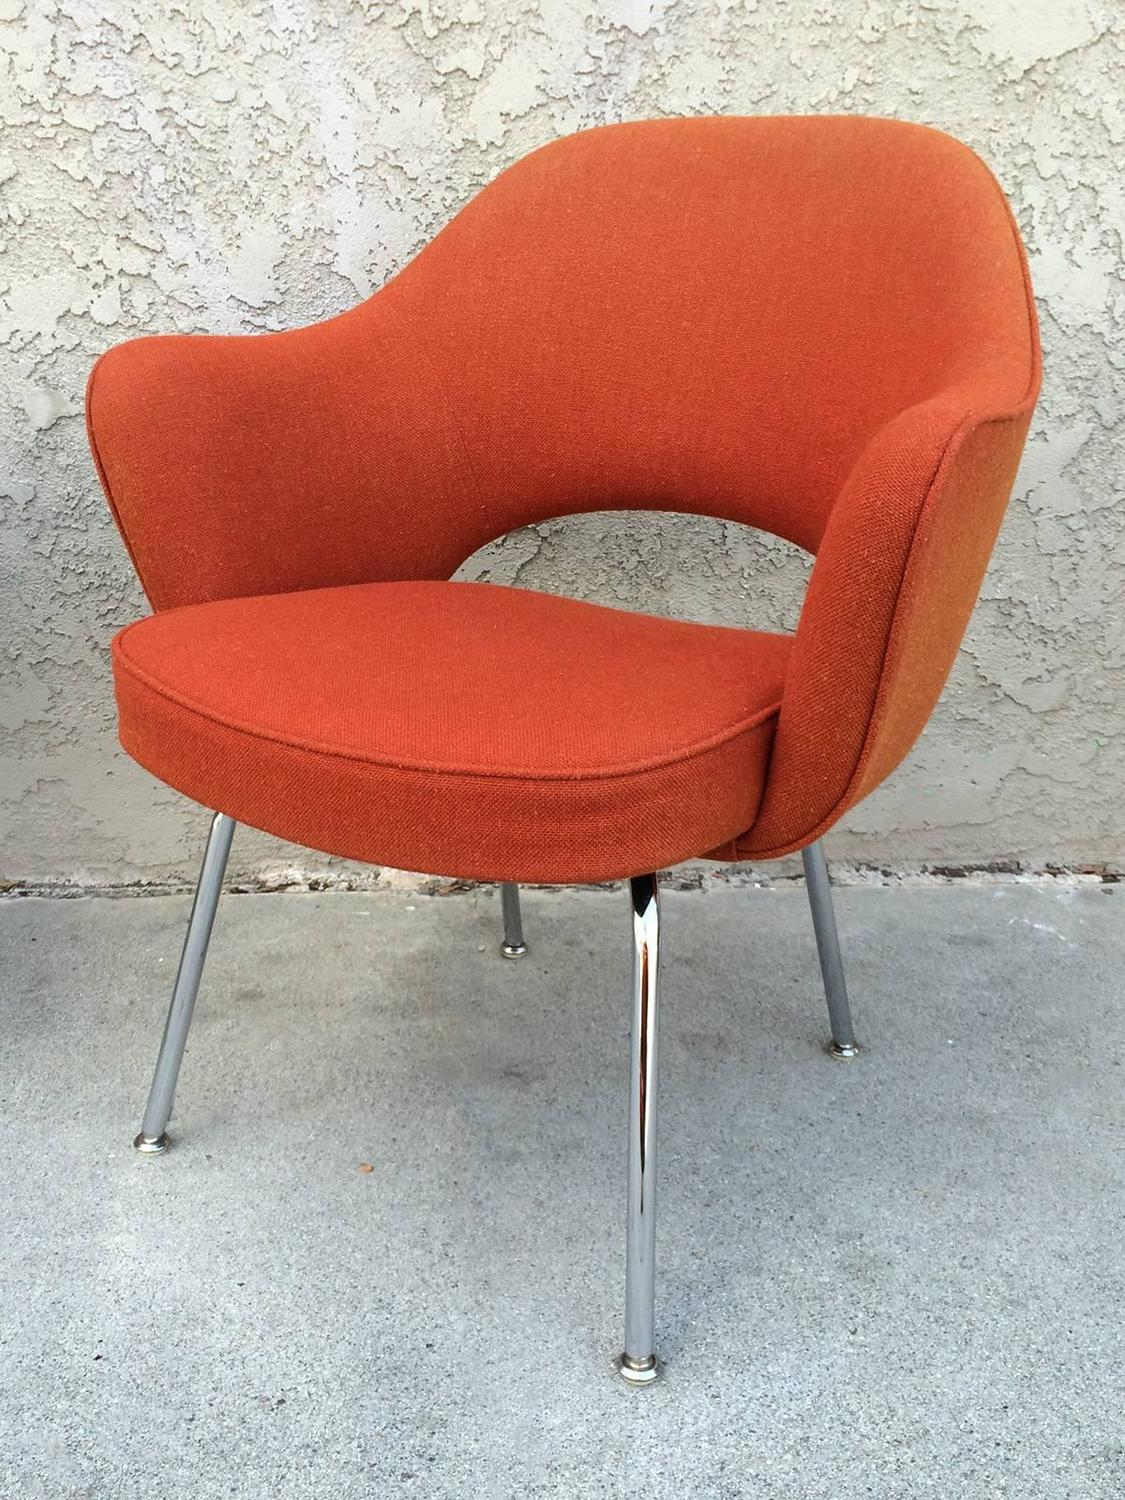 Pair Of Eero Saarinen Executive Chairs By Knoll At 1stdibs